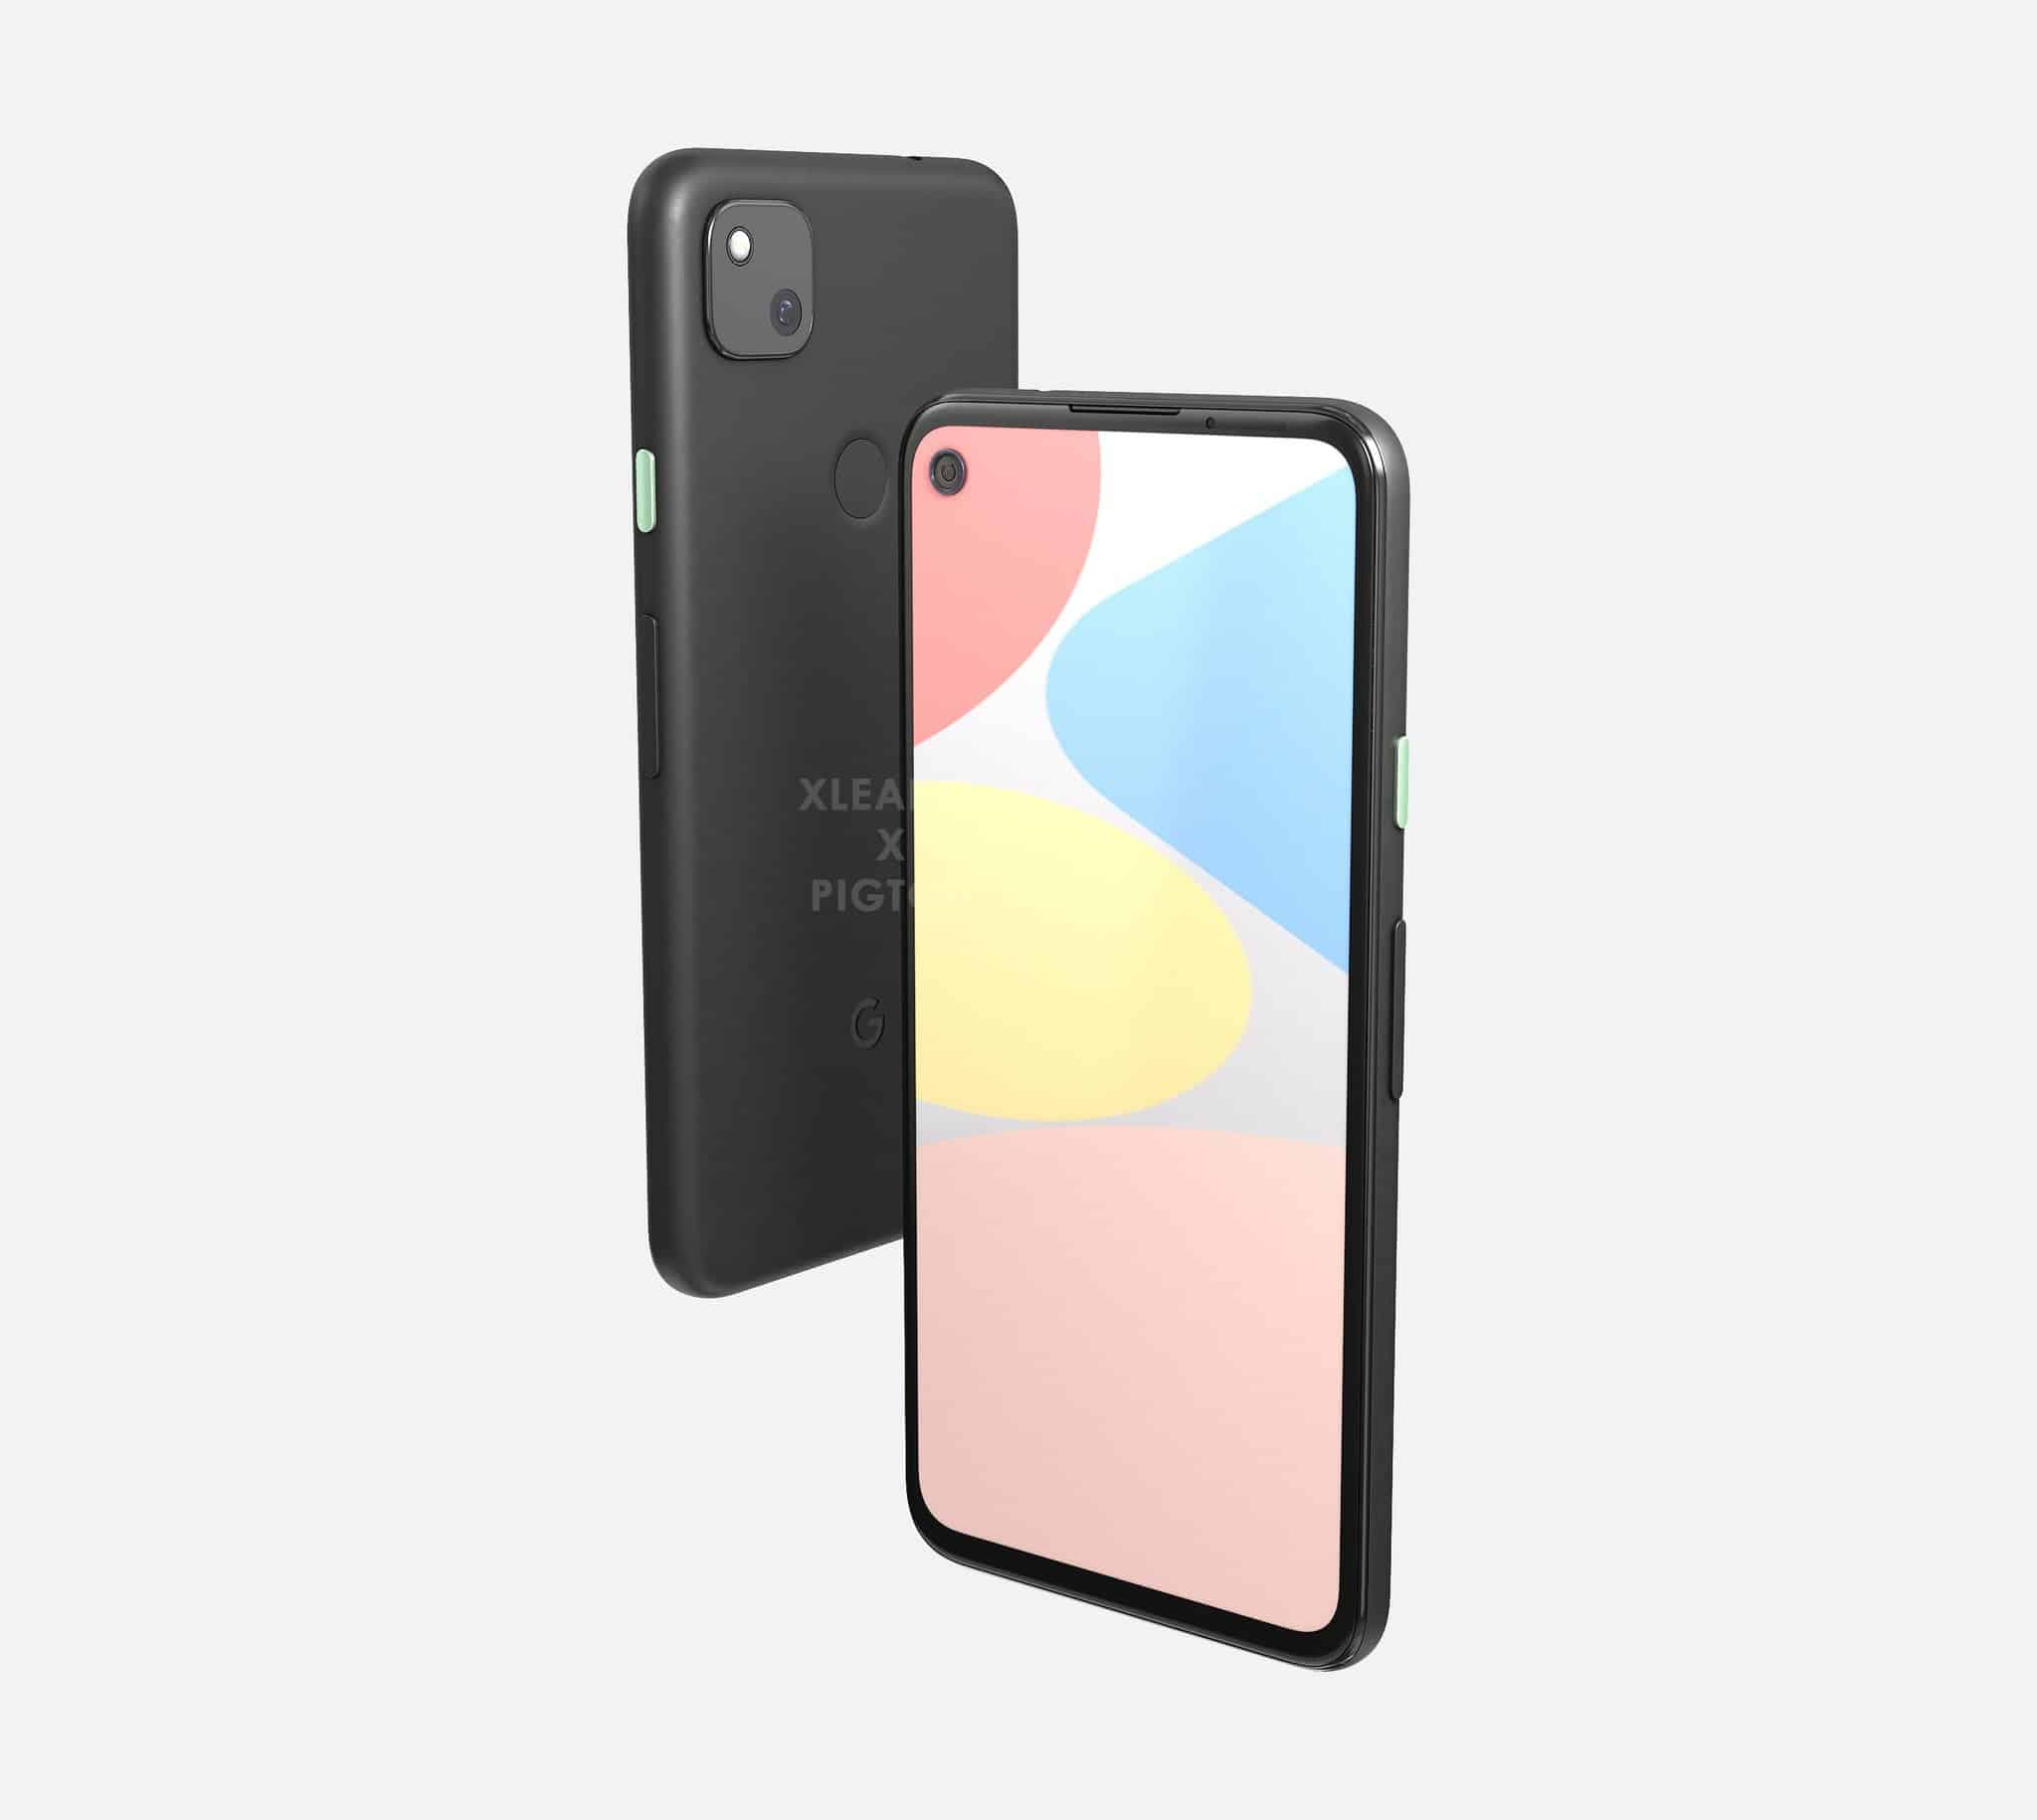 Google Pixel 4a may go on sale from May 22